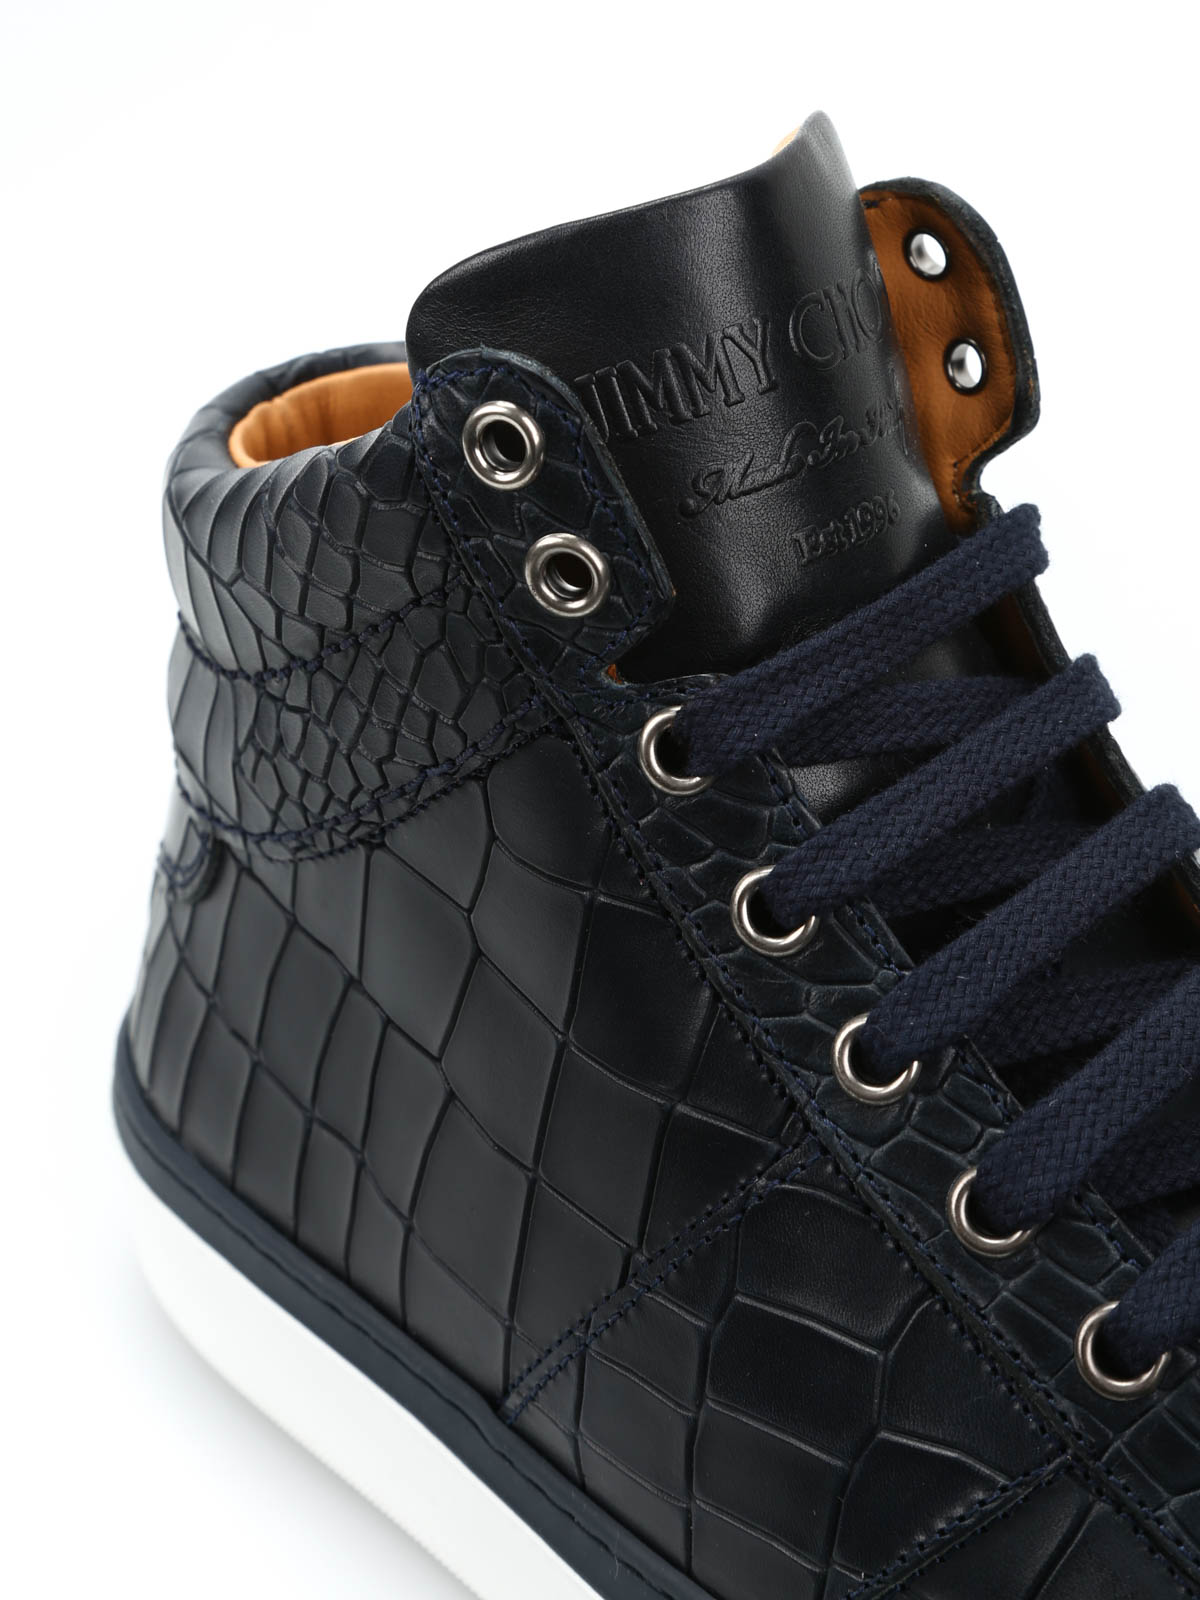 13a471c6990 Jimmy Choo - Belgravia high-top leather sneakers - trainers ...